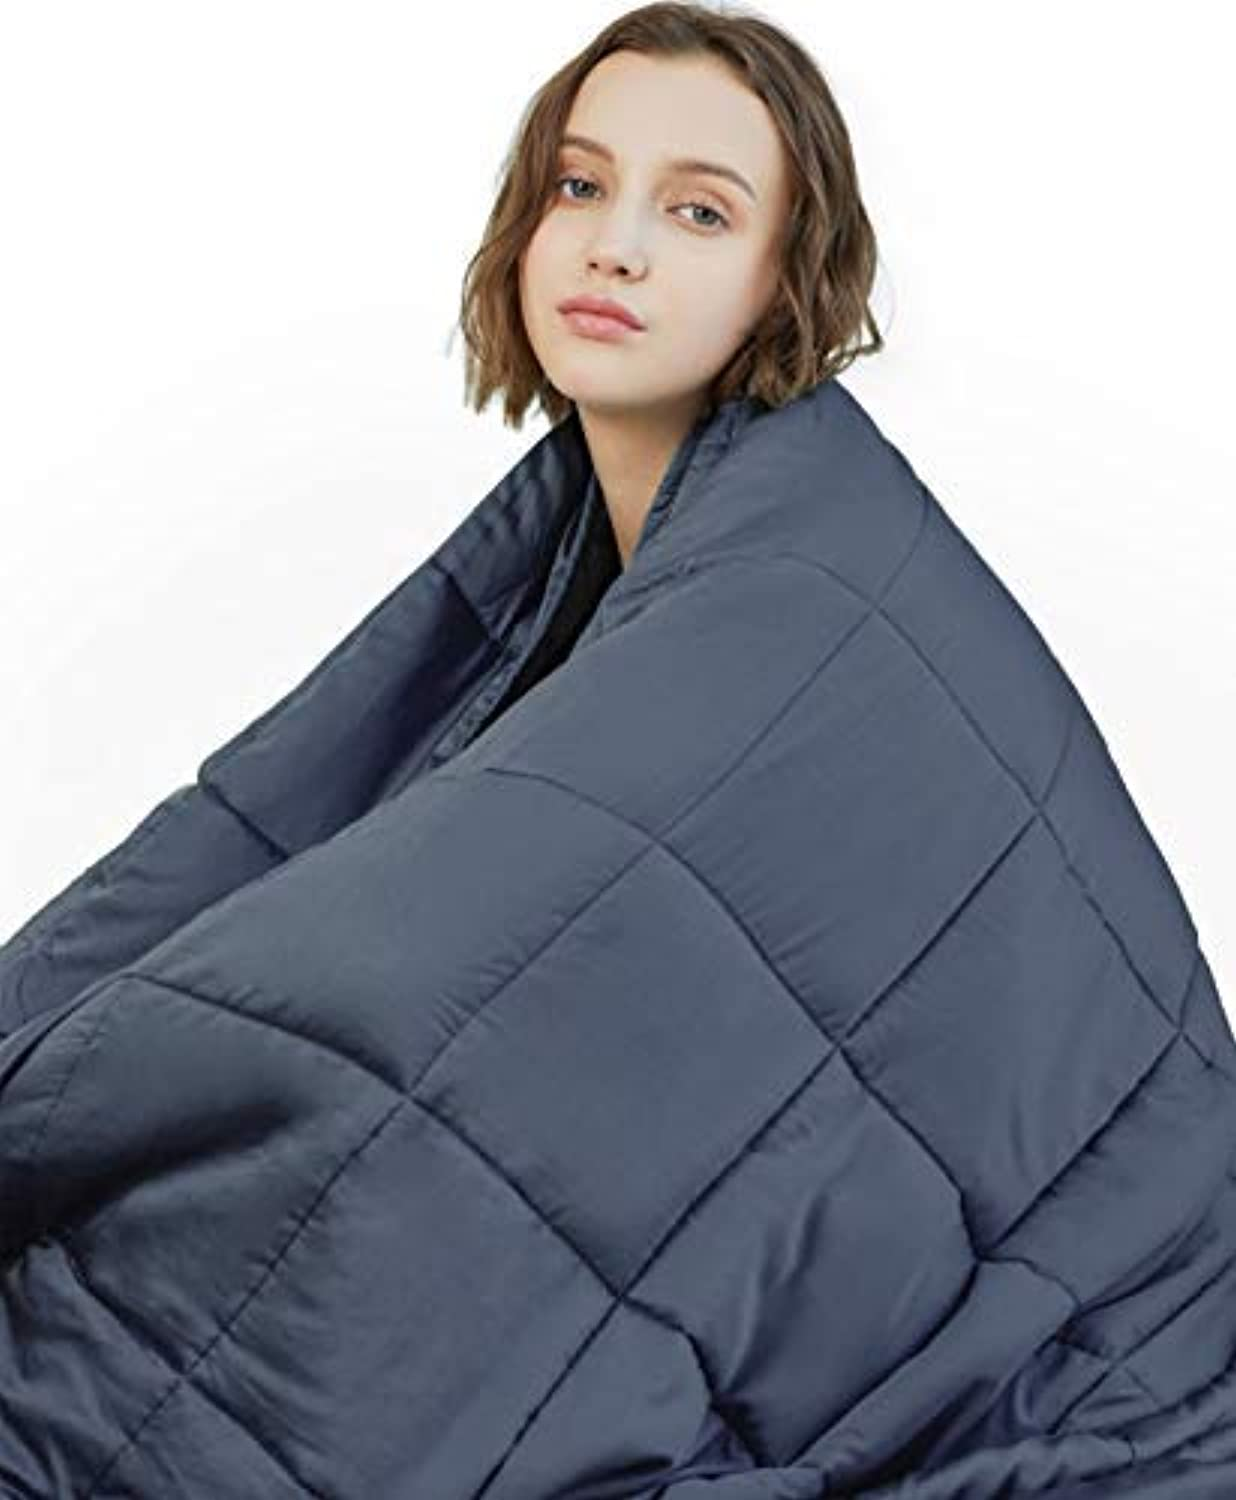 YnM Weighted Blanket (20 lbs, 48''x72'', Twin Size)   2.0 Cool Heavy Blanket   100% Cotton Material with Glass Beads